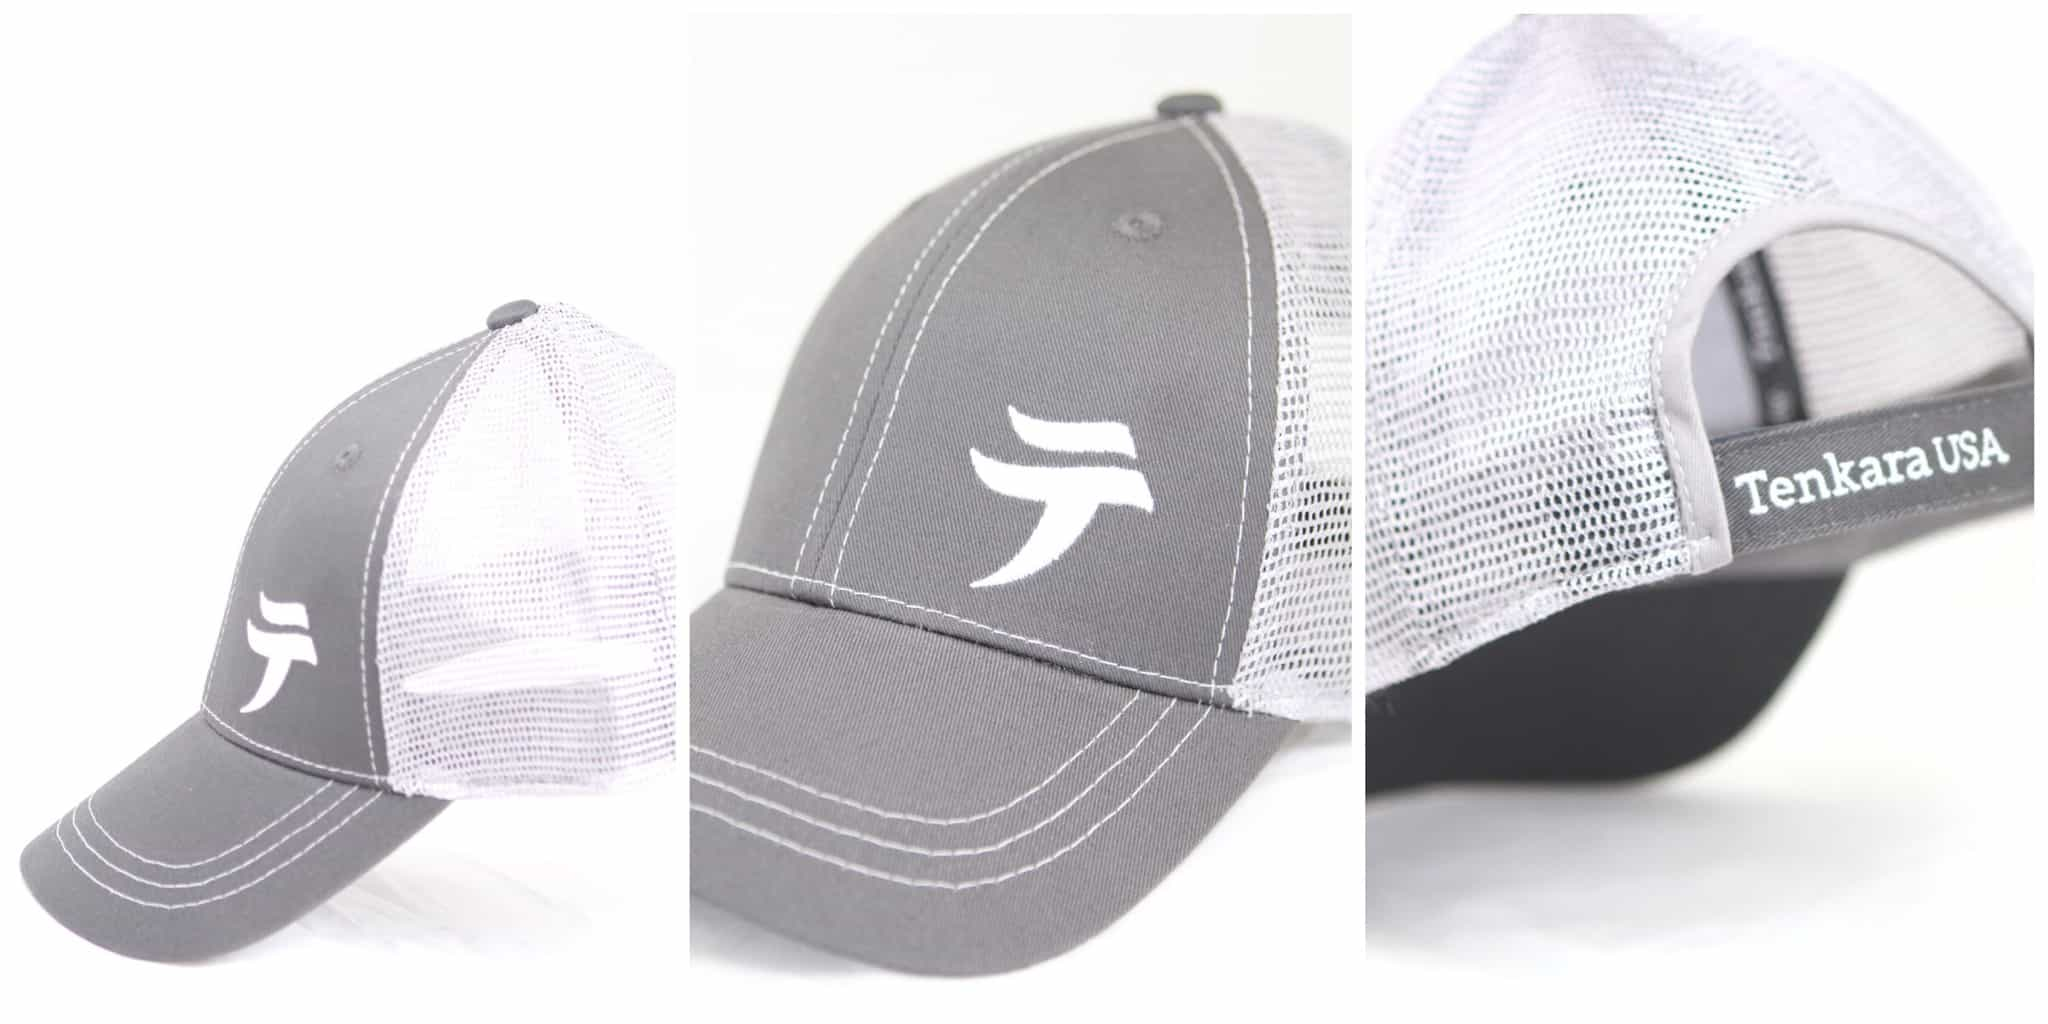 Tenkara trucker hat